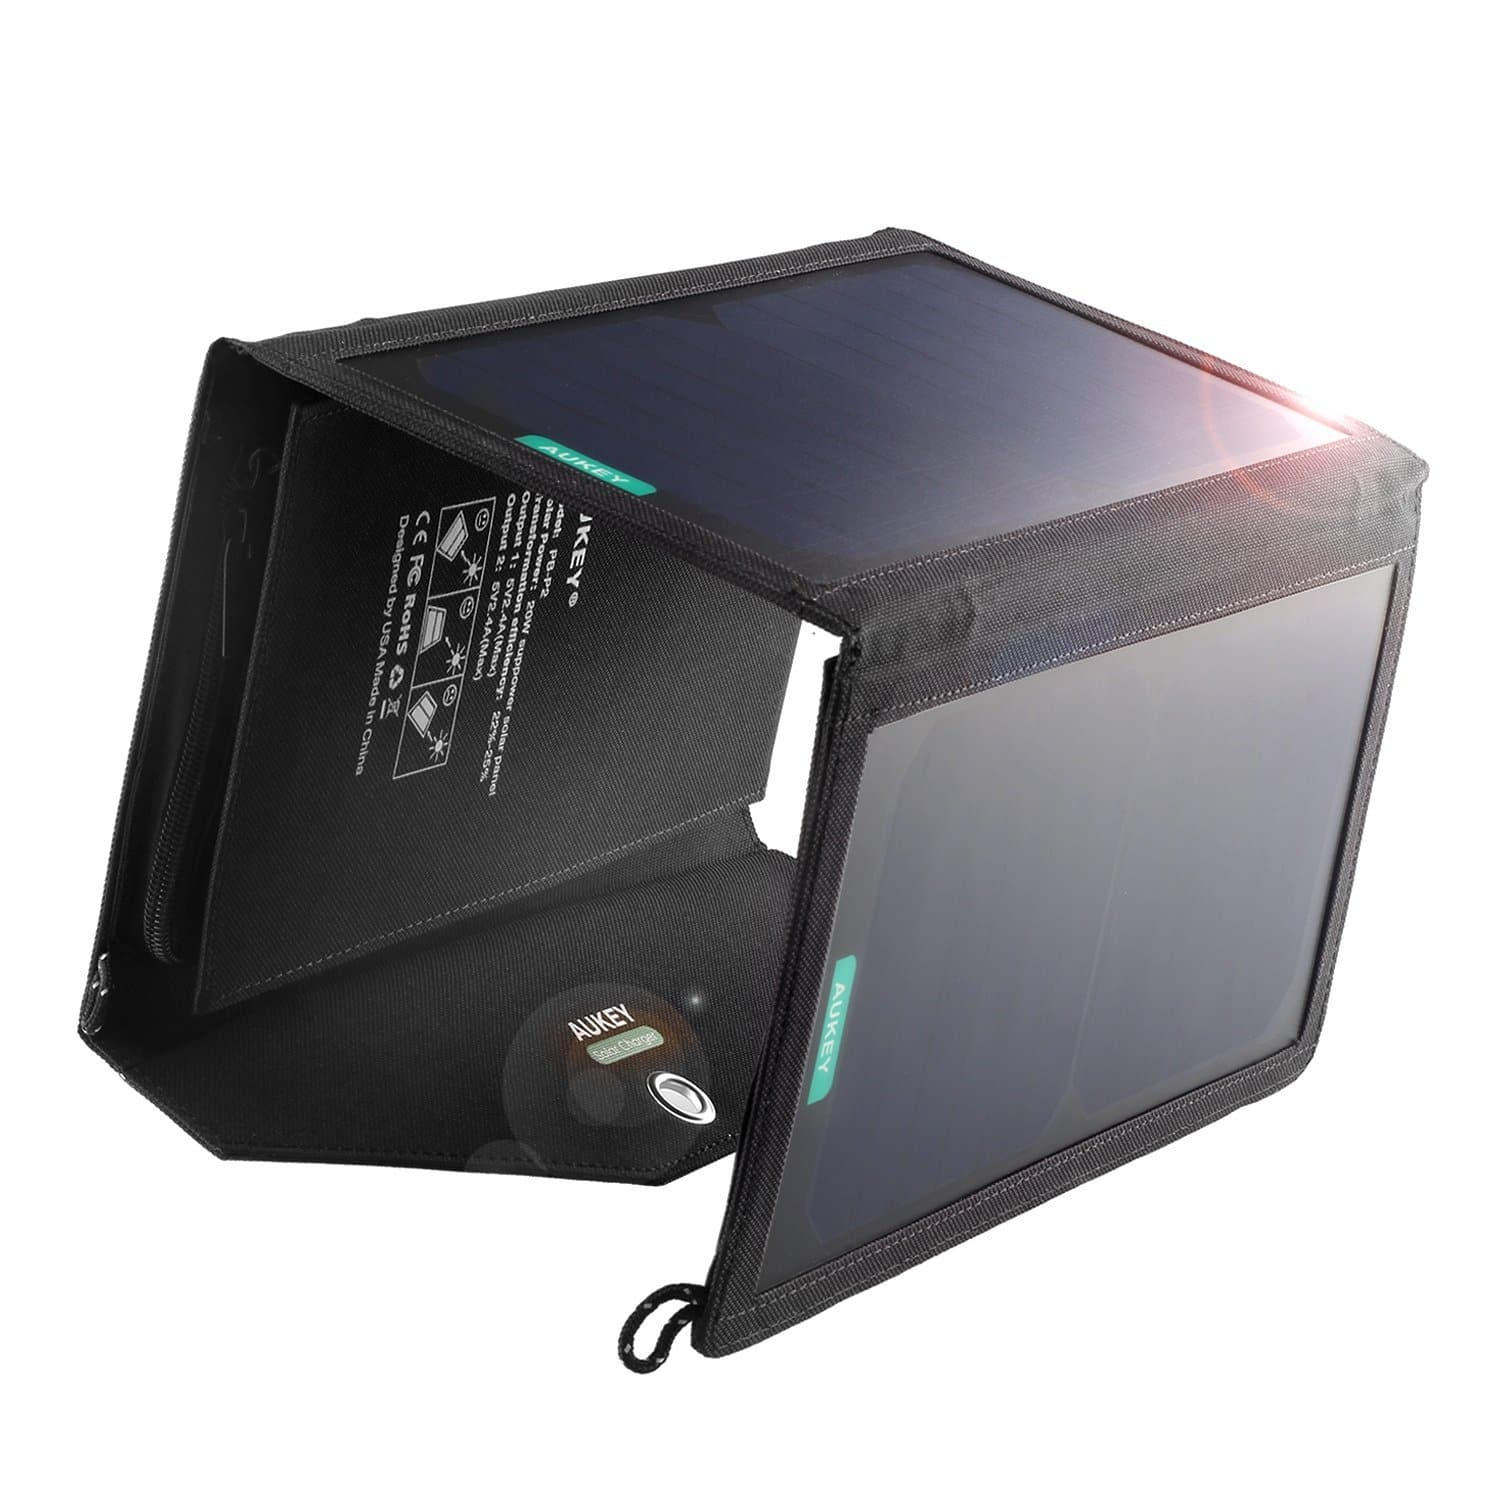 AUKEY 20W 2-Port Solar Charger $29.99